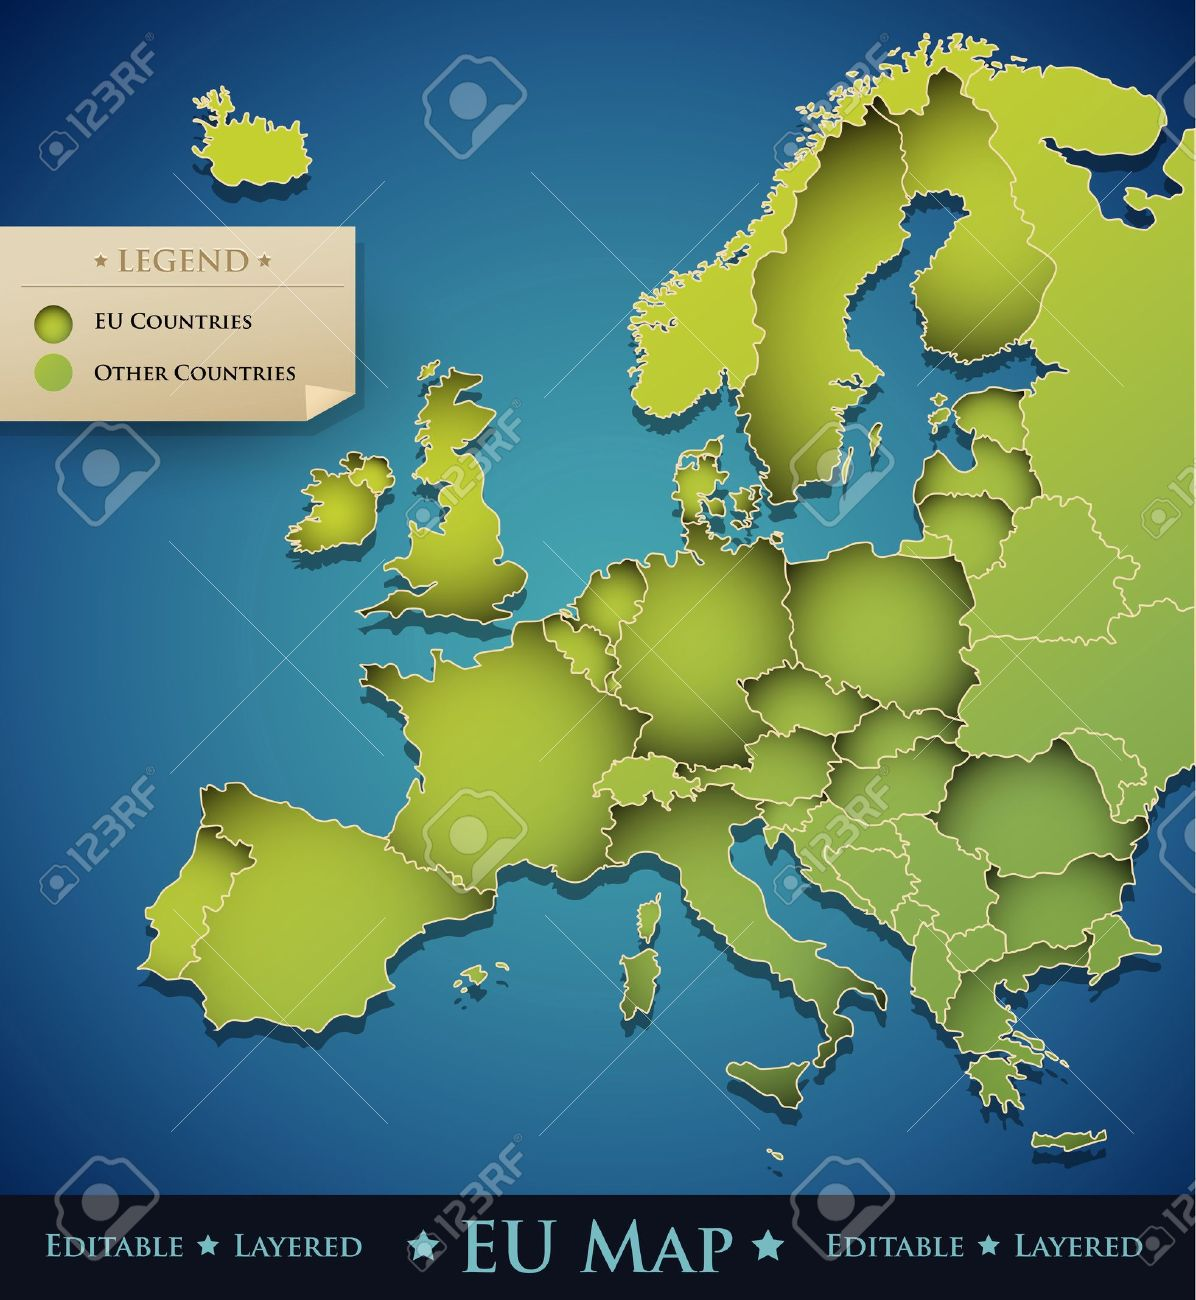 Vector Europe Map With European Union  EU  Countries   Great     Vector   Vector Europe map with European Union  EU  countries   great  decoration design element for a professional website  brochure  banner   creative art